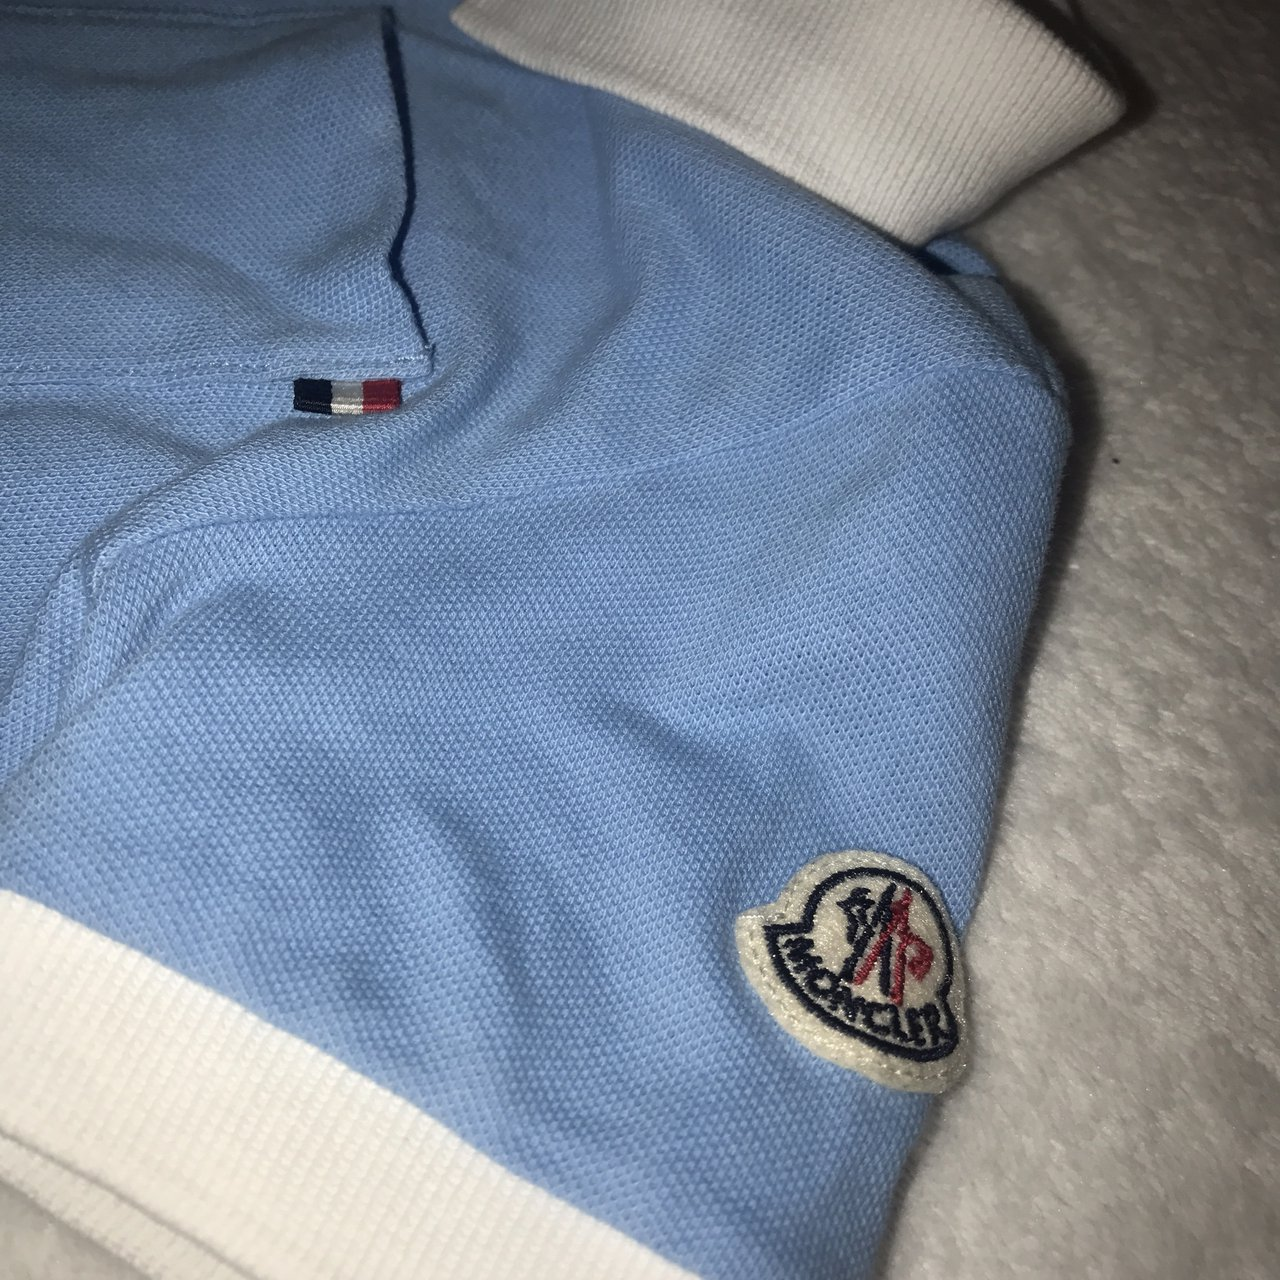 818ed6485909 Moncler baby boys blue 2 piece polo top and shorts set. blue - Depop